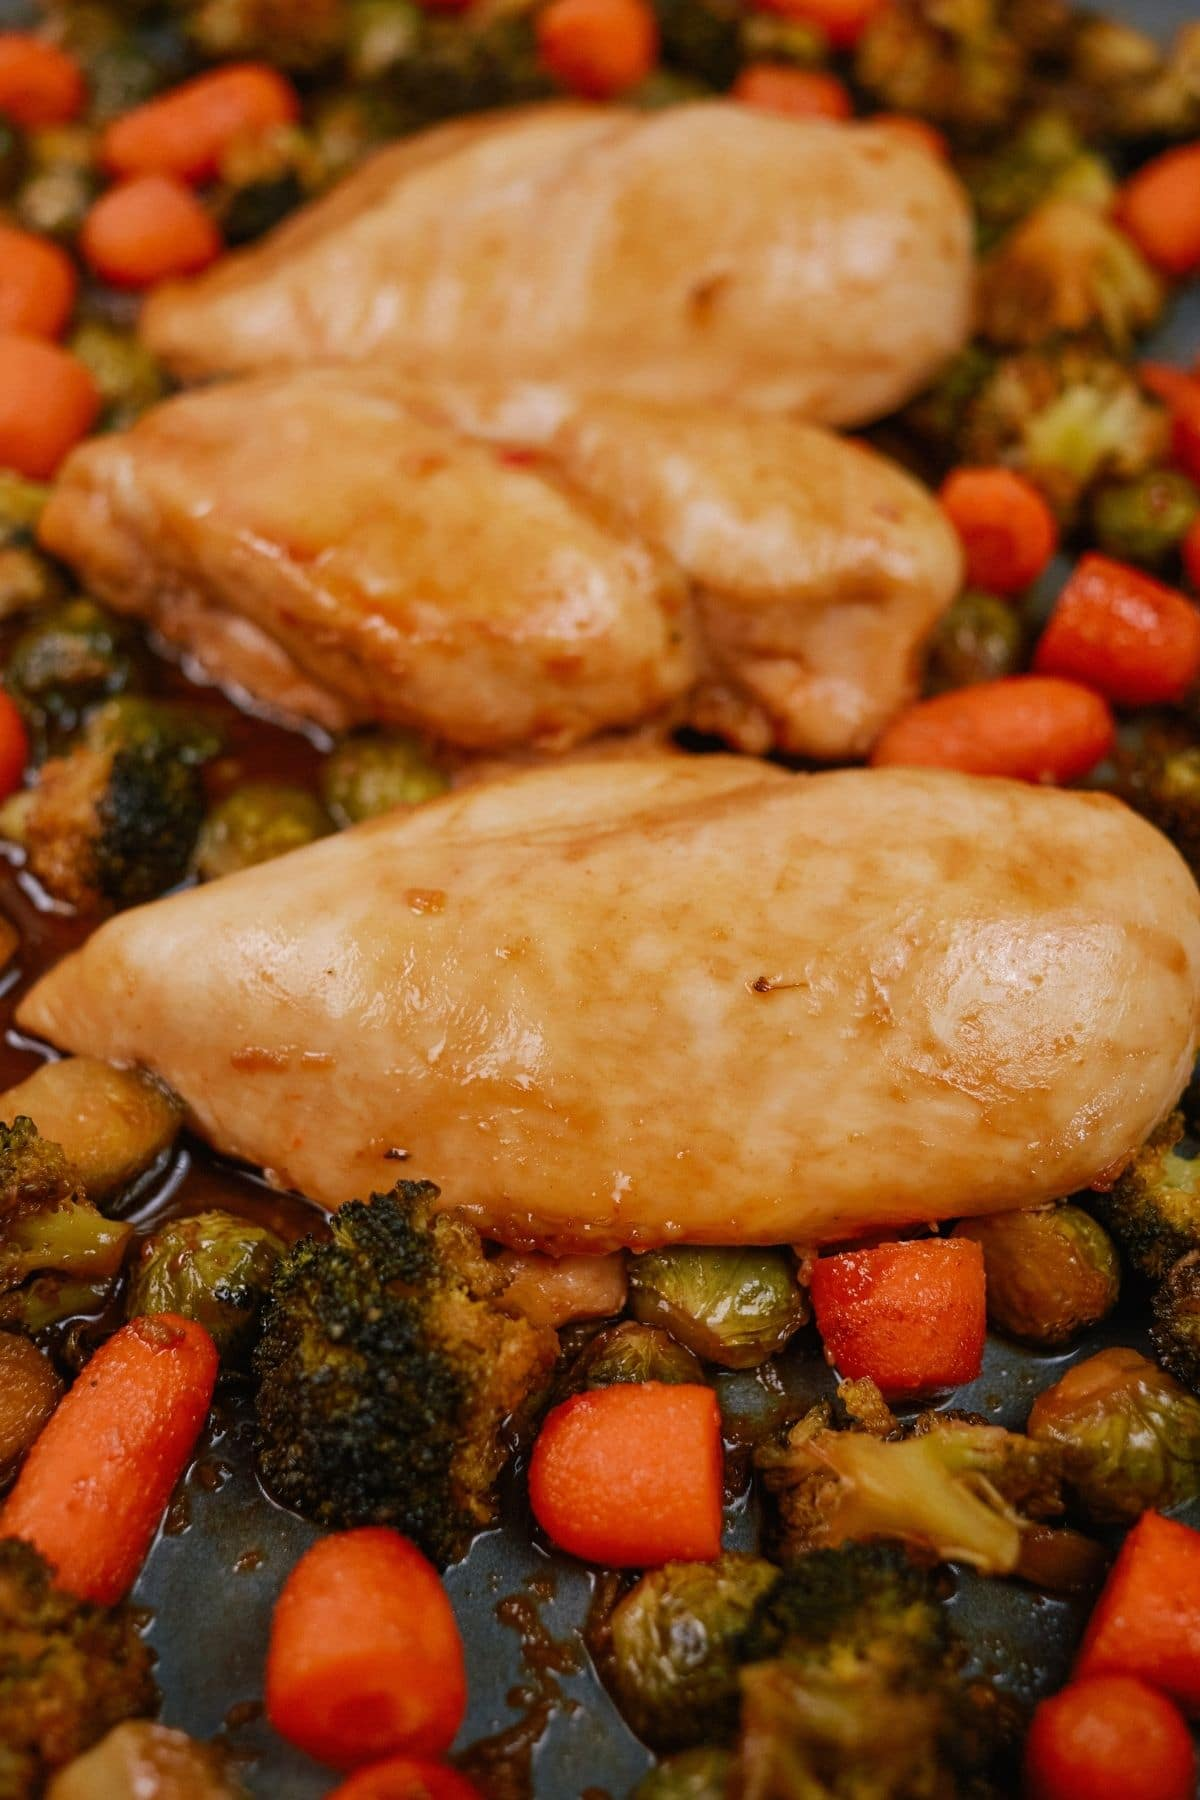 Chicken breasts on top of vegetables on baking sheet